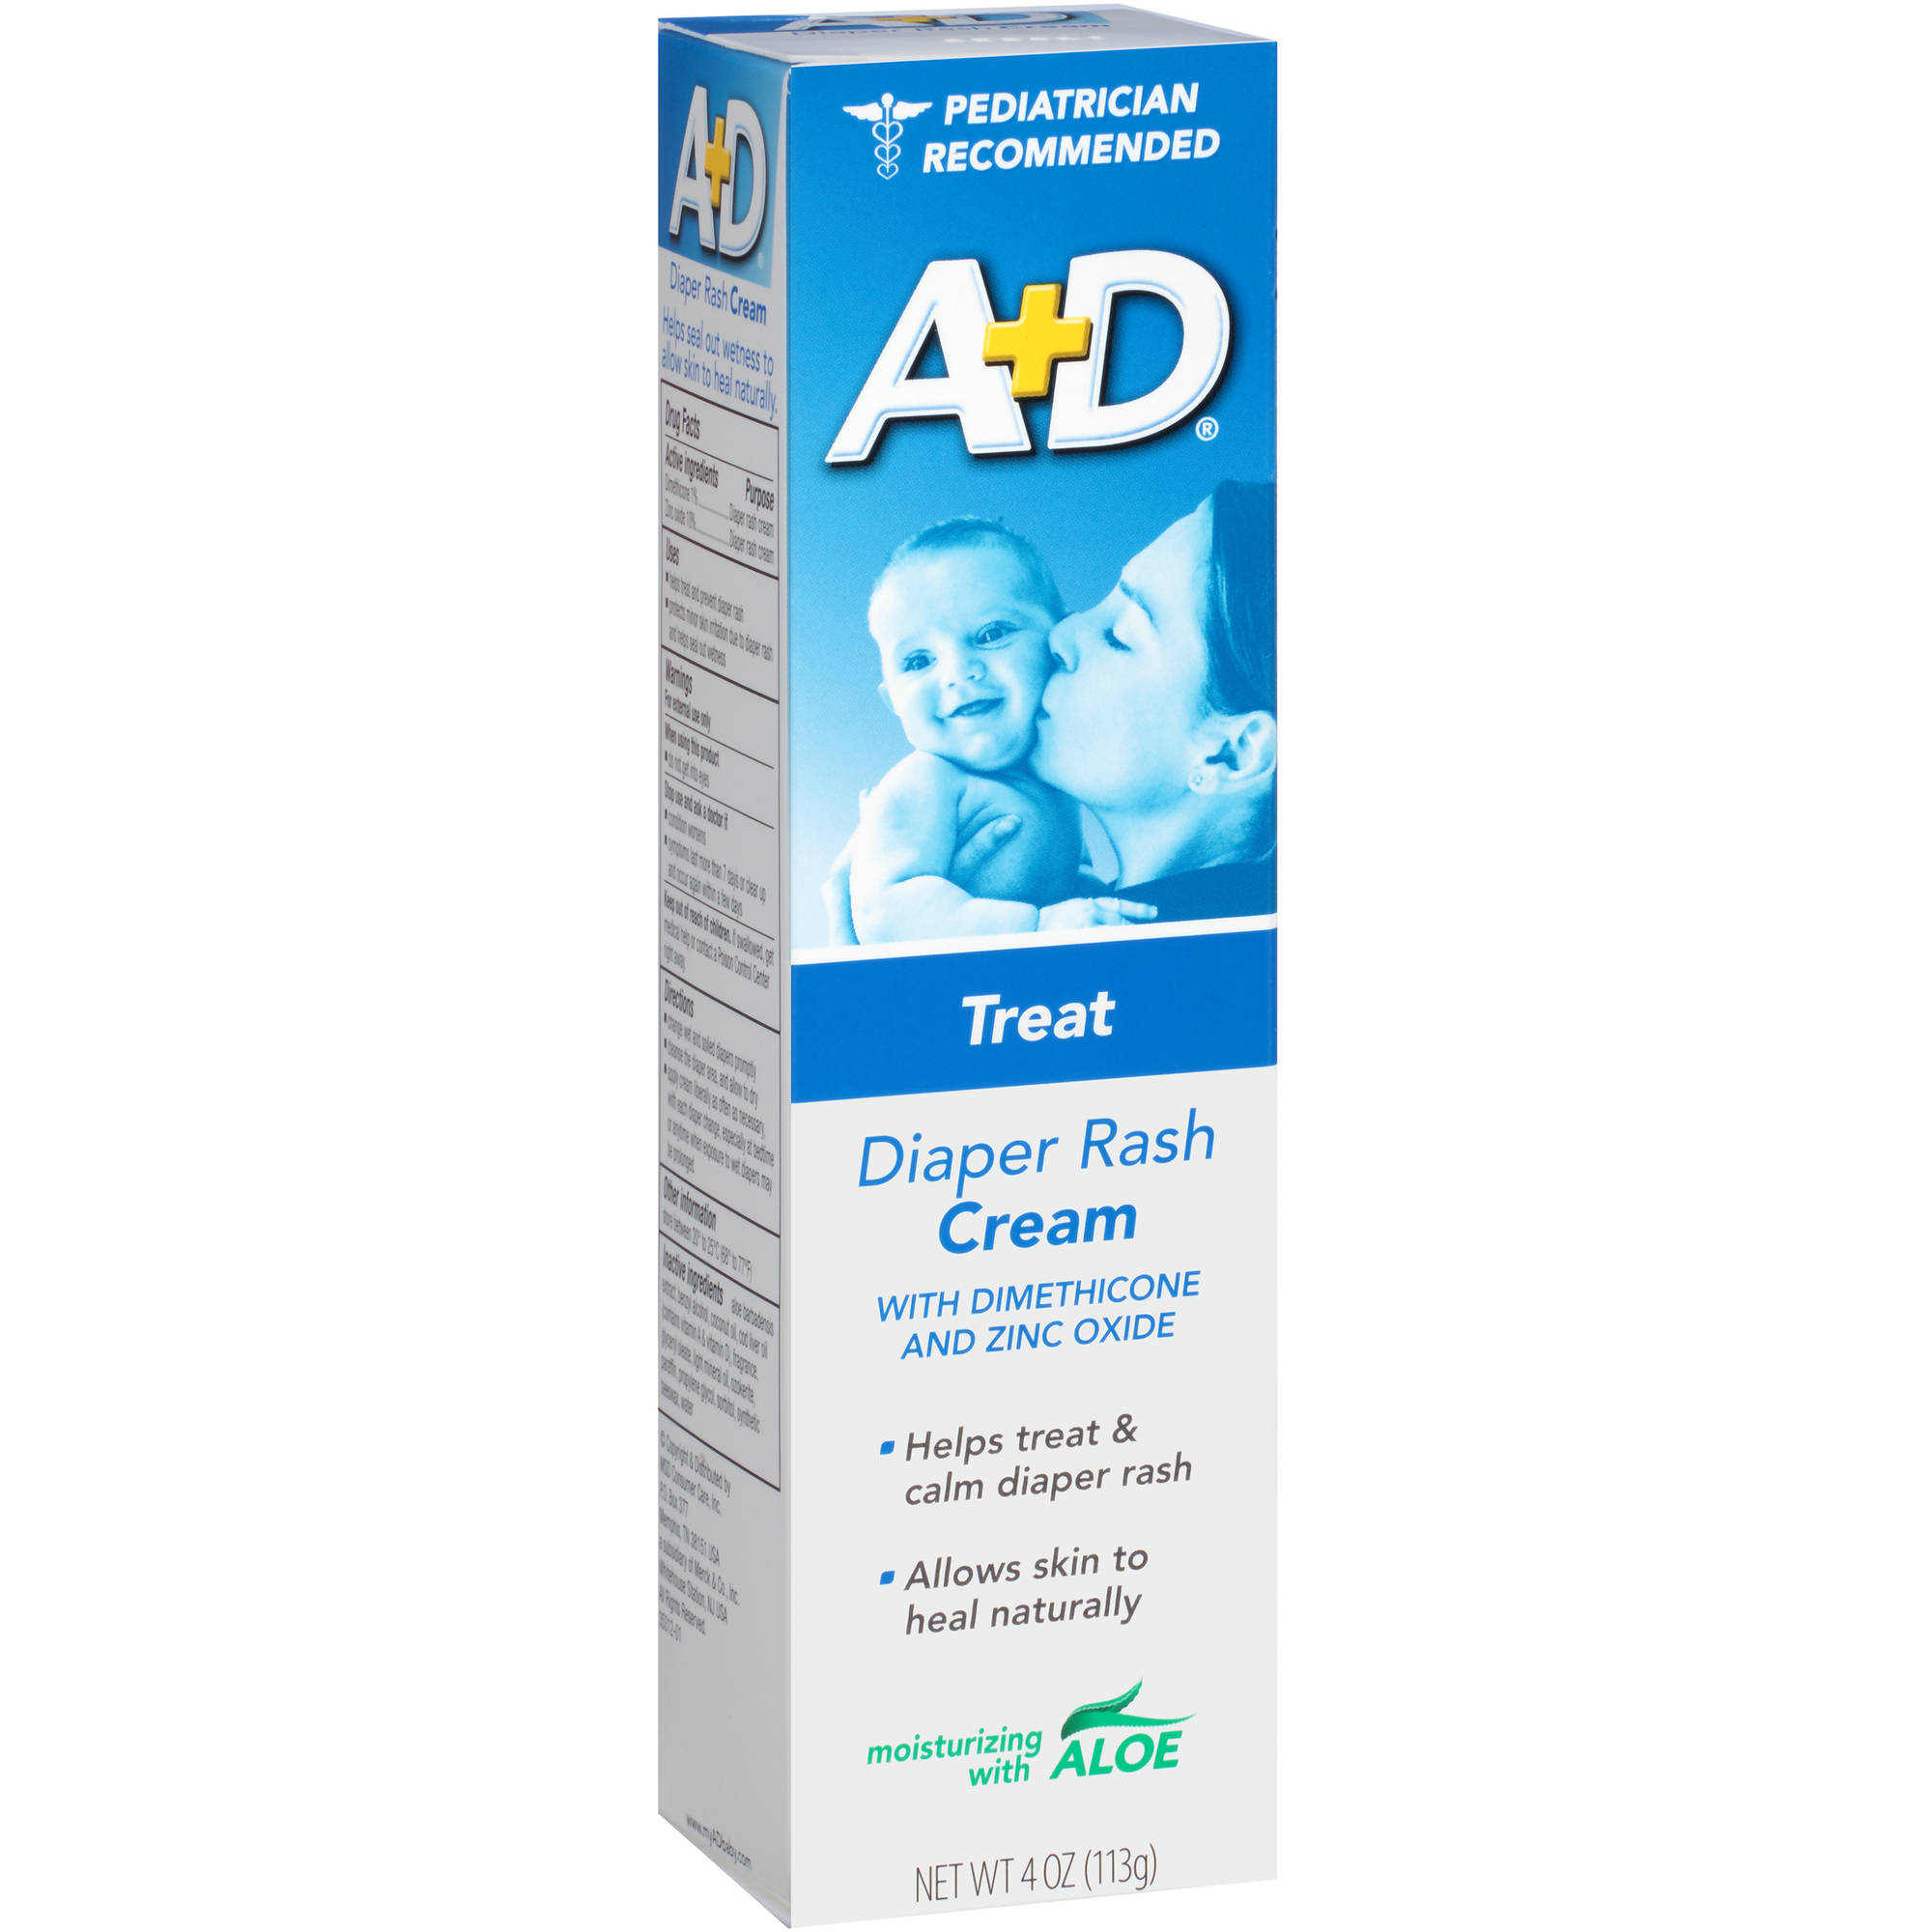 Image of A+D Diaper Rash Cream W/ Aloe Zinc Oxide Cream, 4 oz